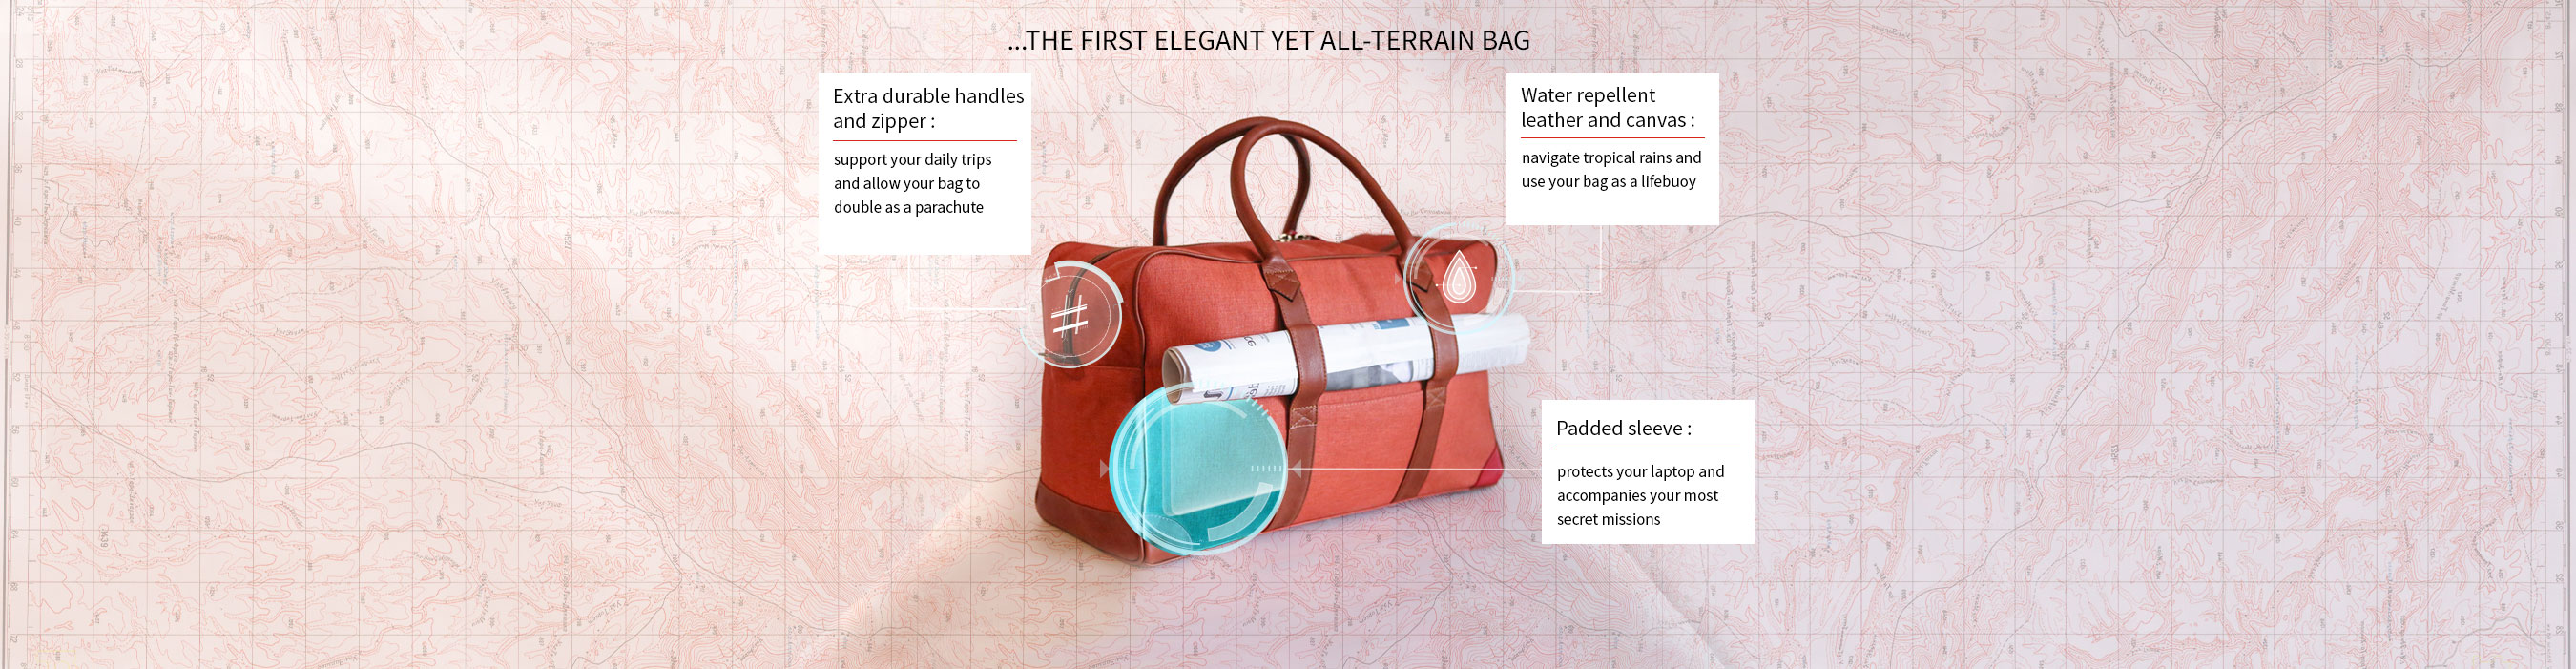 THE FIRST ELEGANT YET ALL-TERRAIN BAG